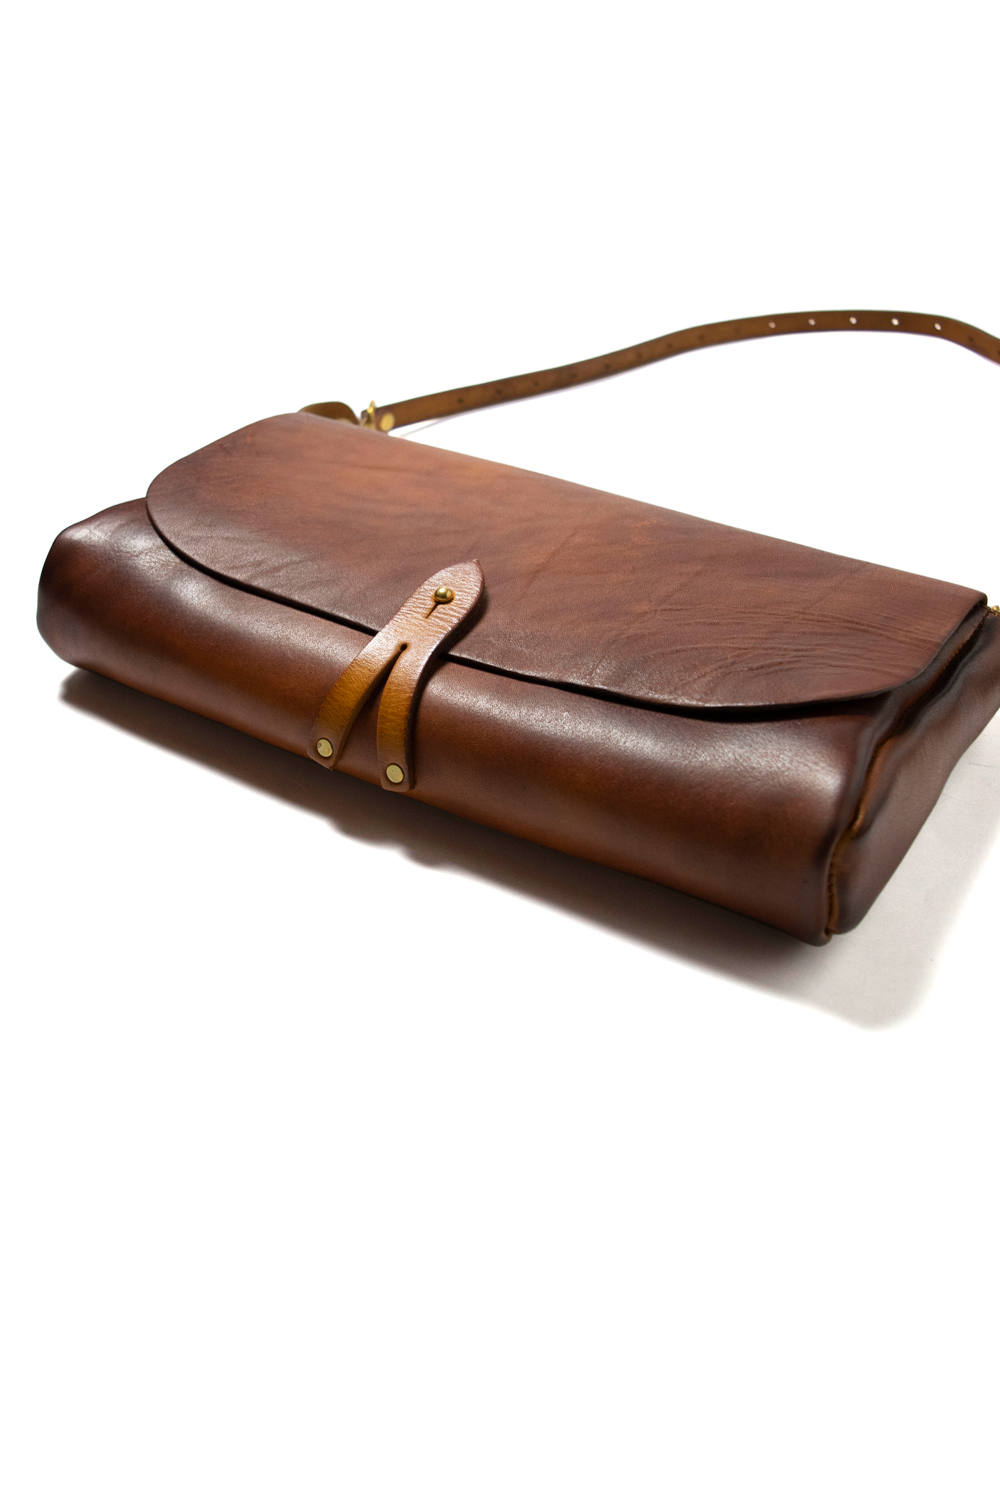 【18AW】レザー3WAYクラッチバッグ [マスタードキャメル] / LEATHER 3WAY CLUTCH BAG [MUSTARD CAMEL]